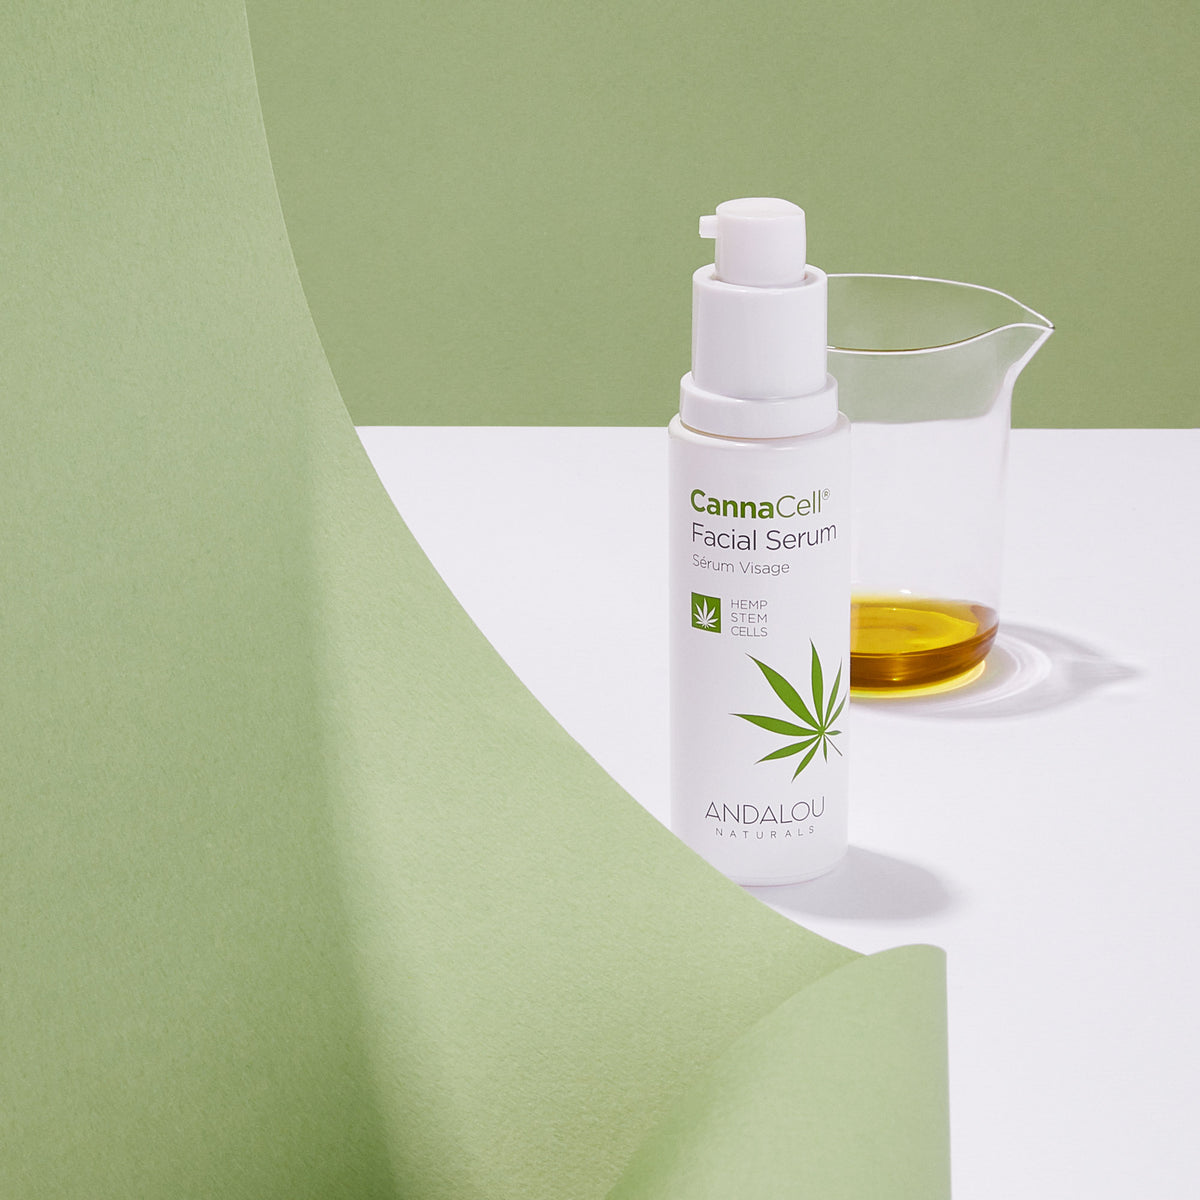 CannaCell Facial Serum